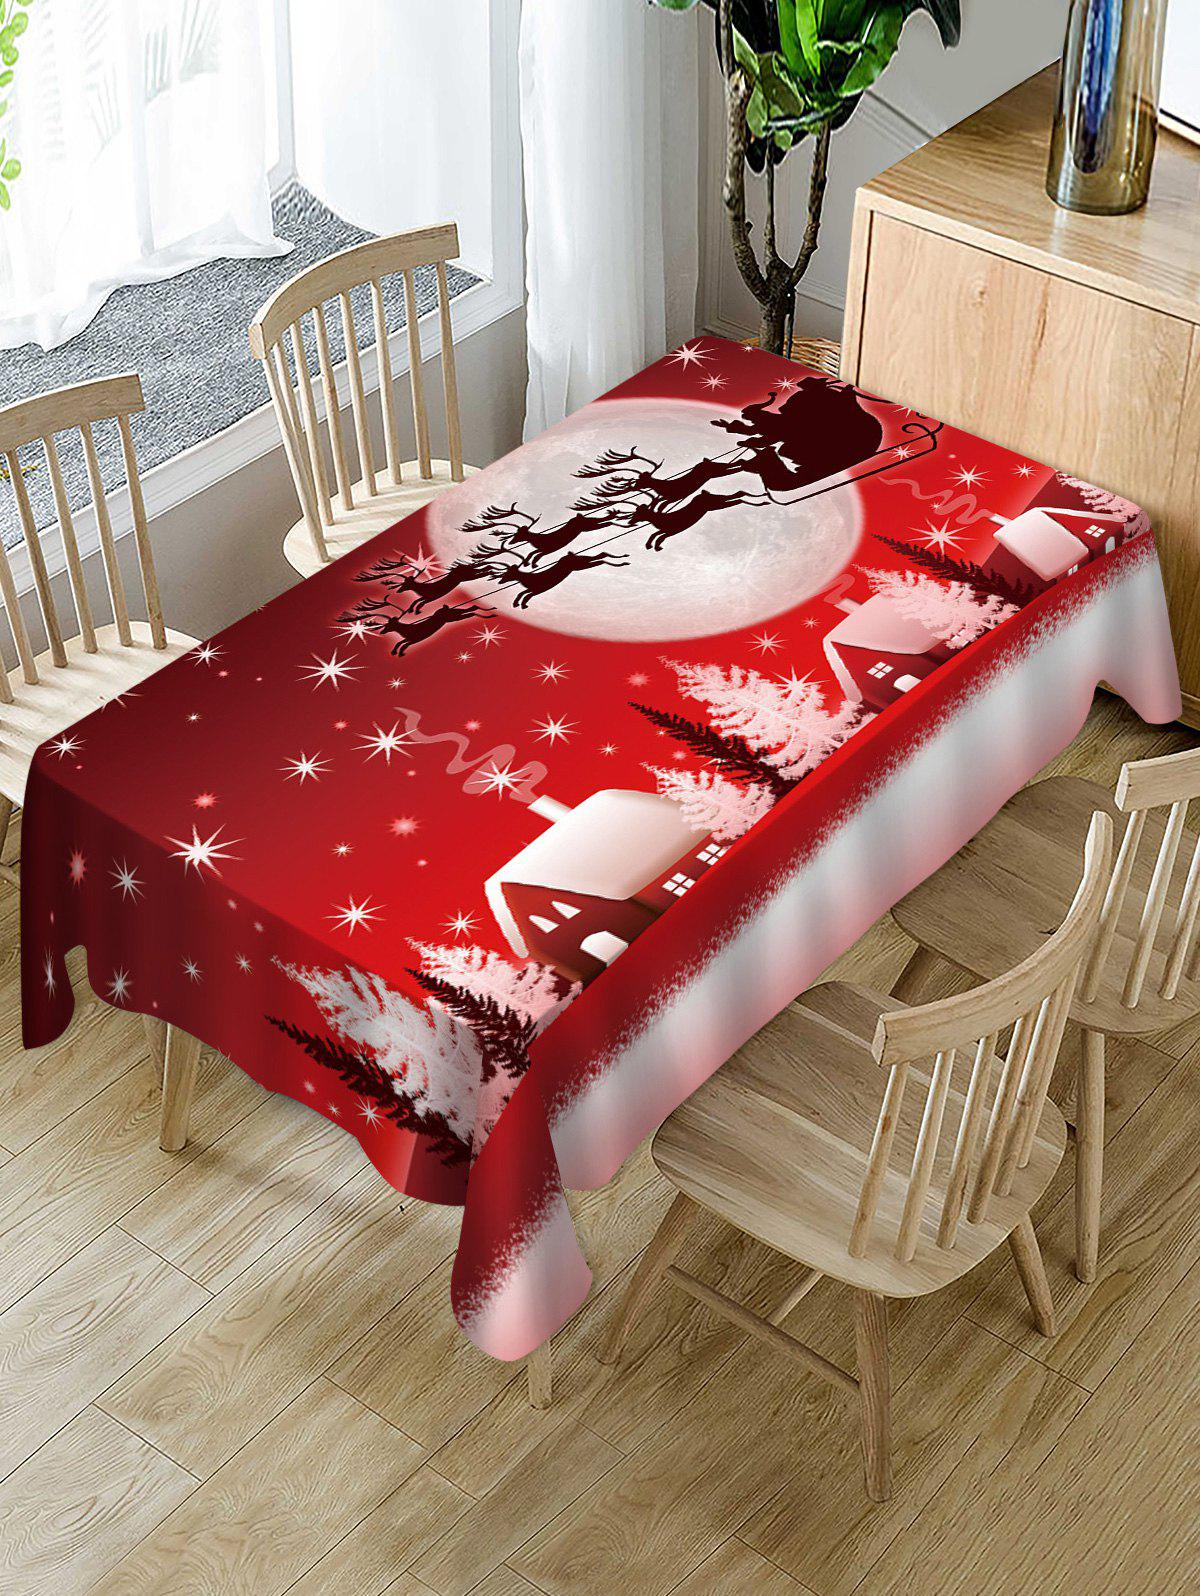 Fashion Christmas Night Deer Print Fabric Waterproof Table Cloth